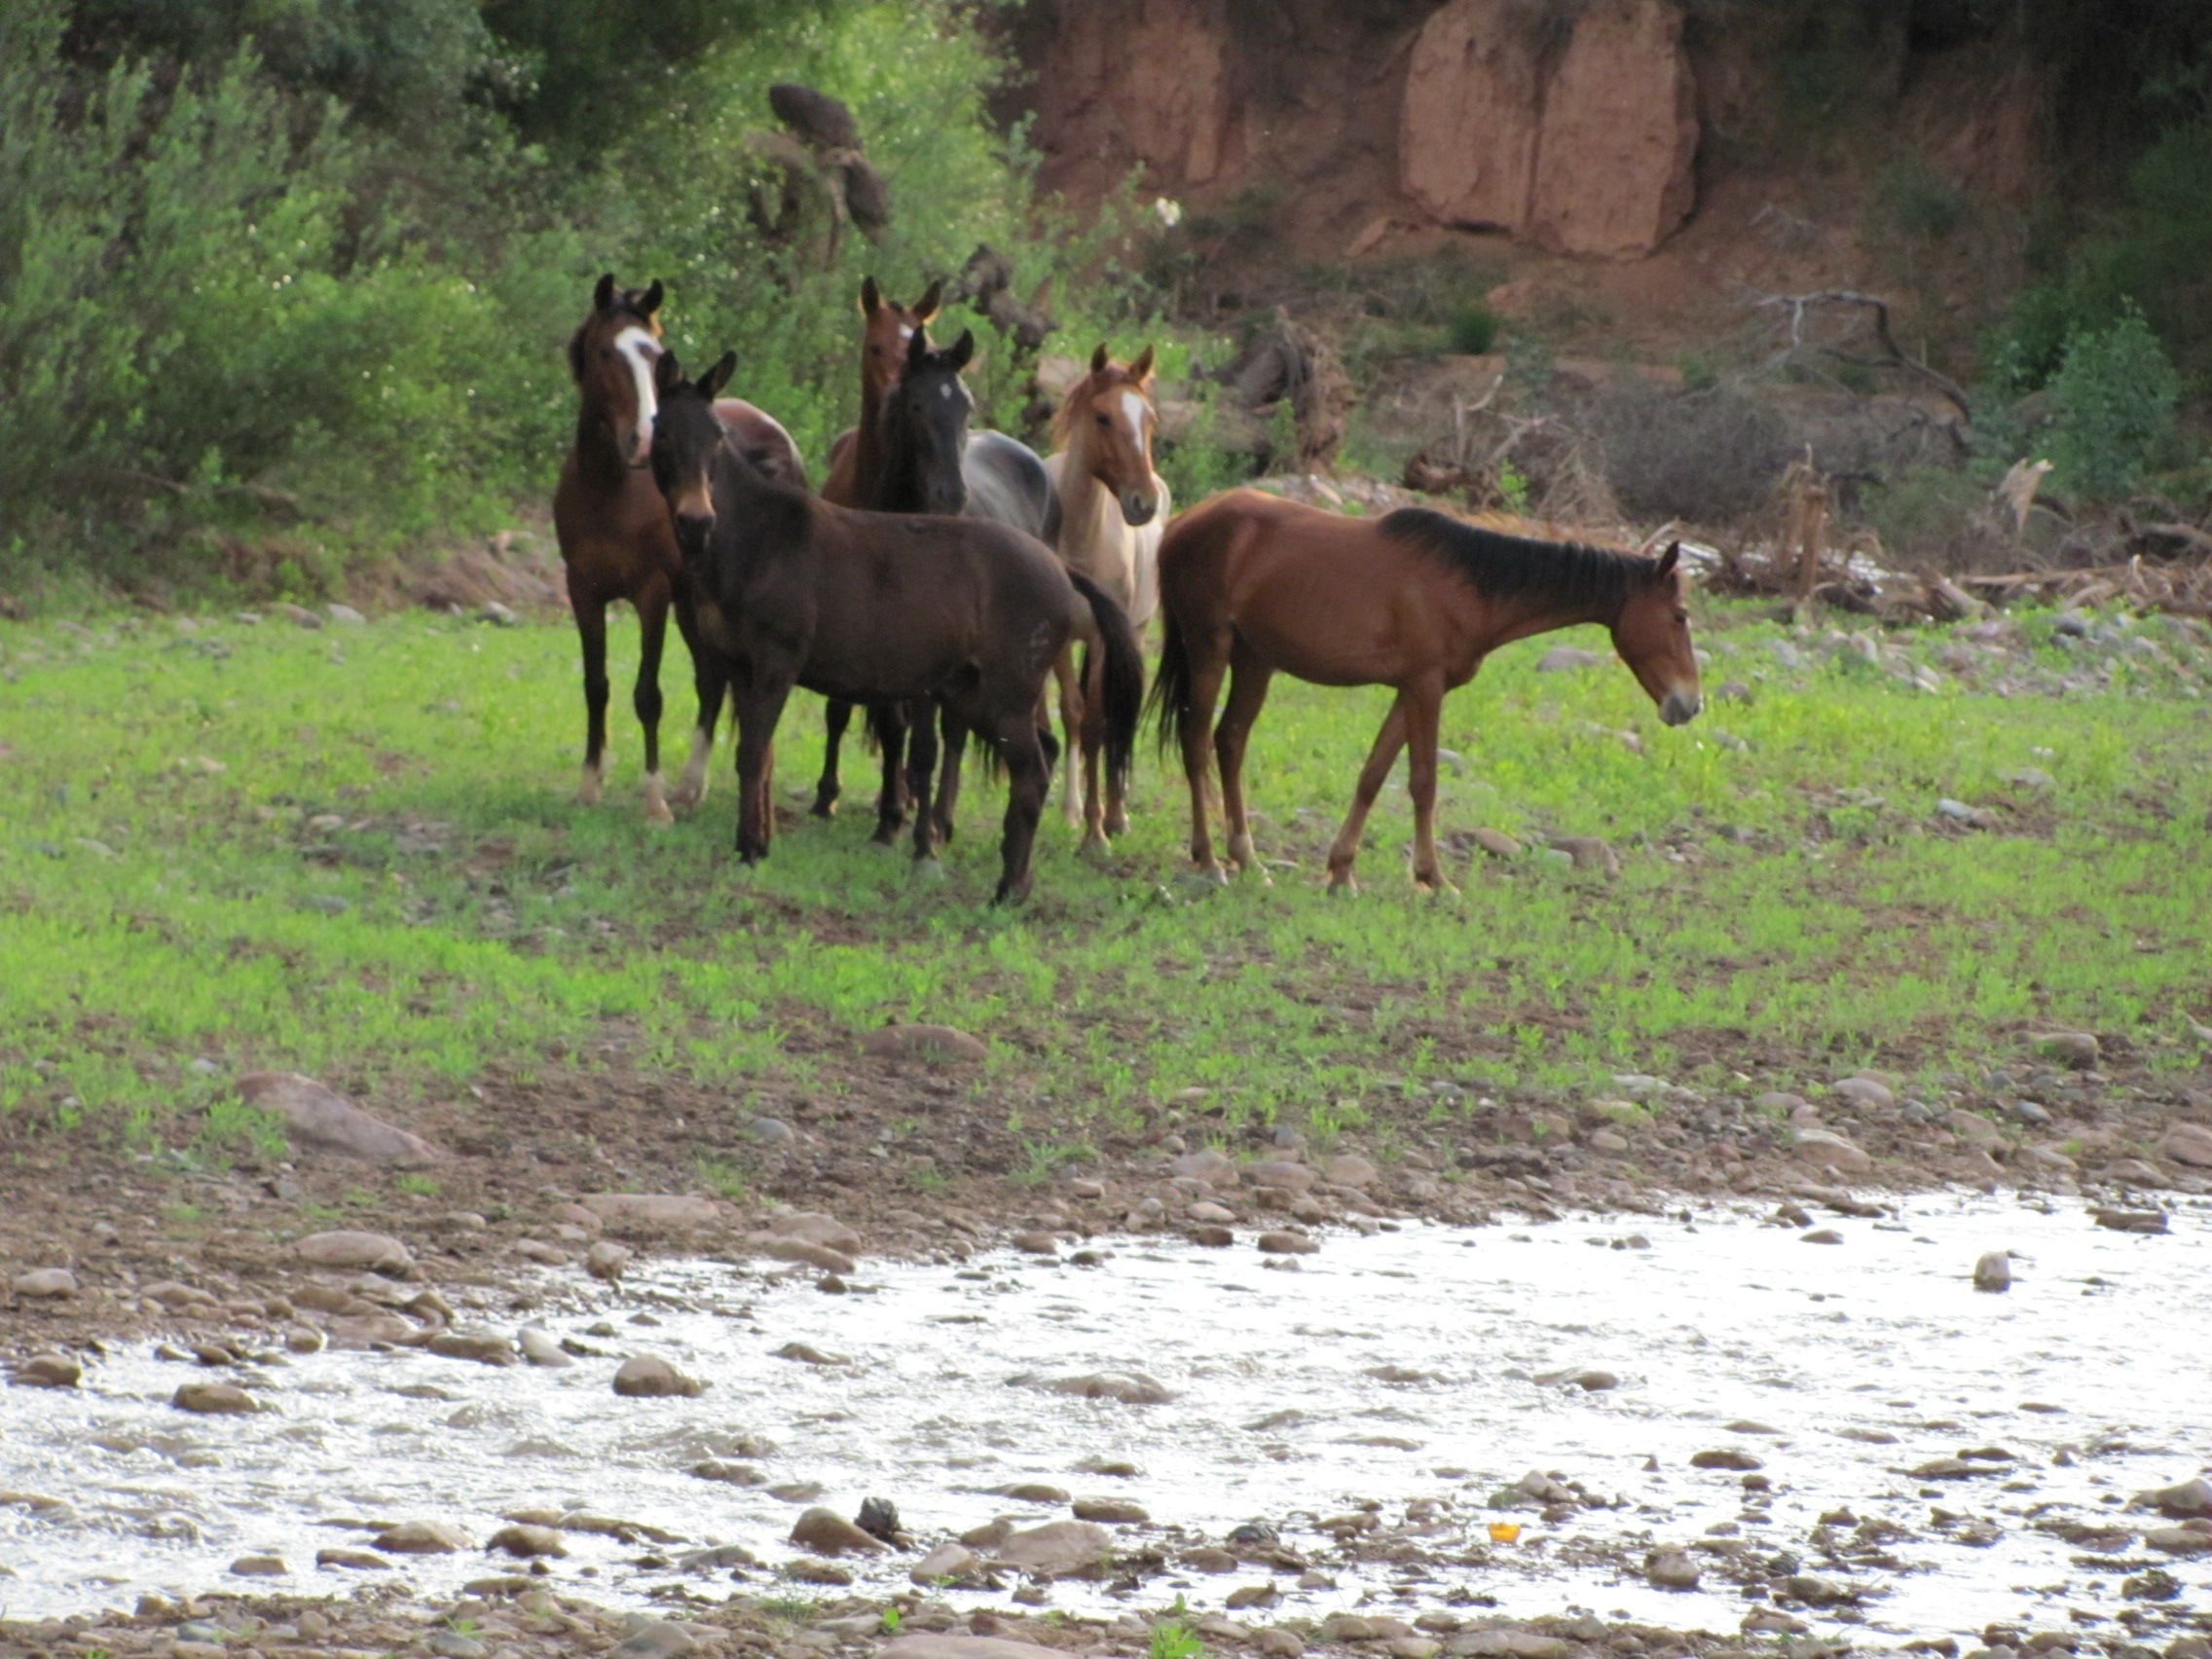 Small horse herd by river - Copy - Copy - Copy.jpg